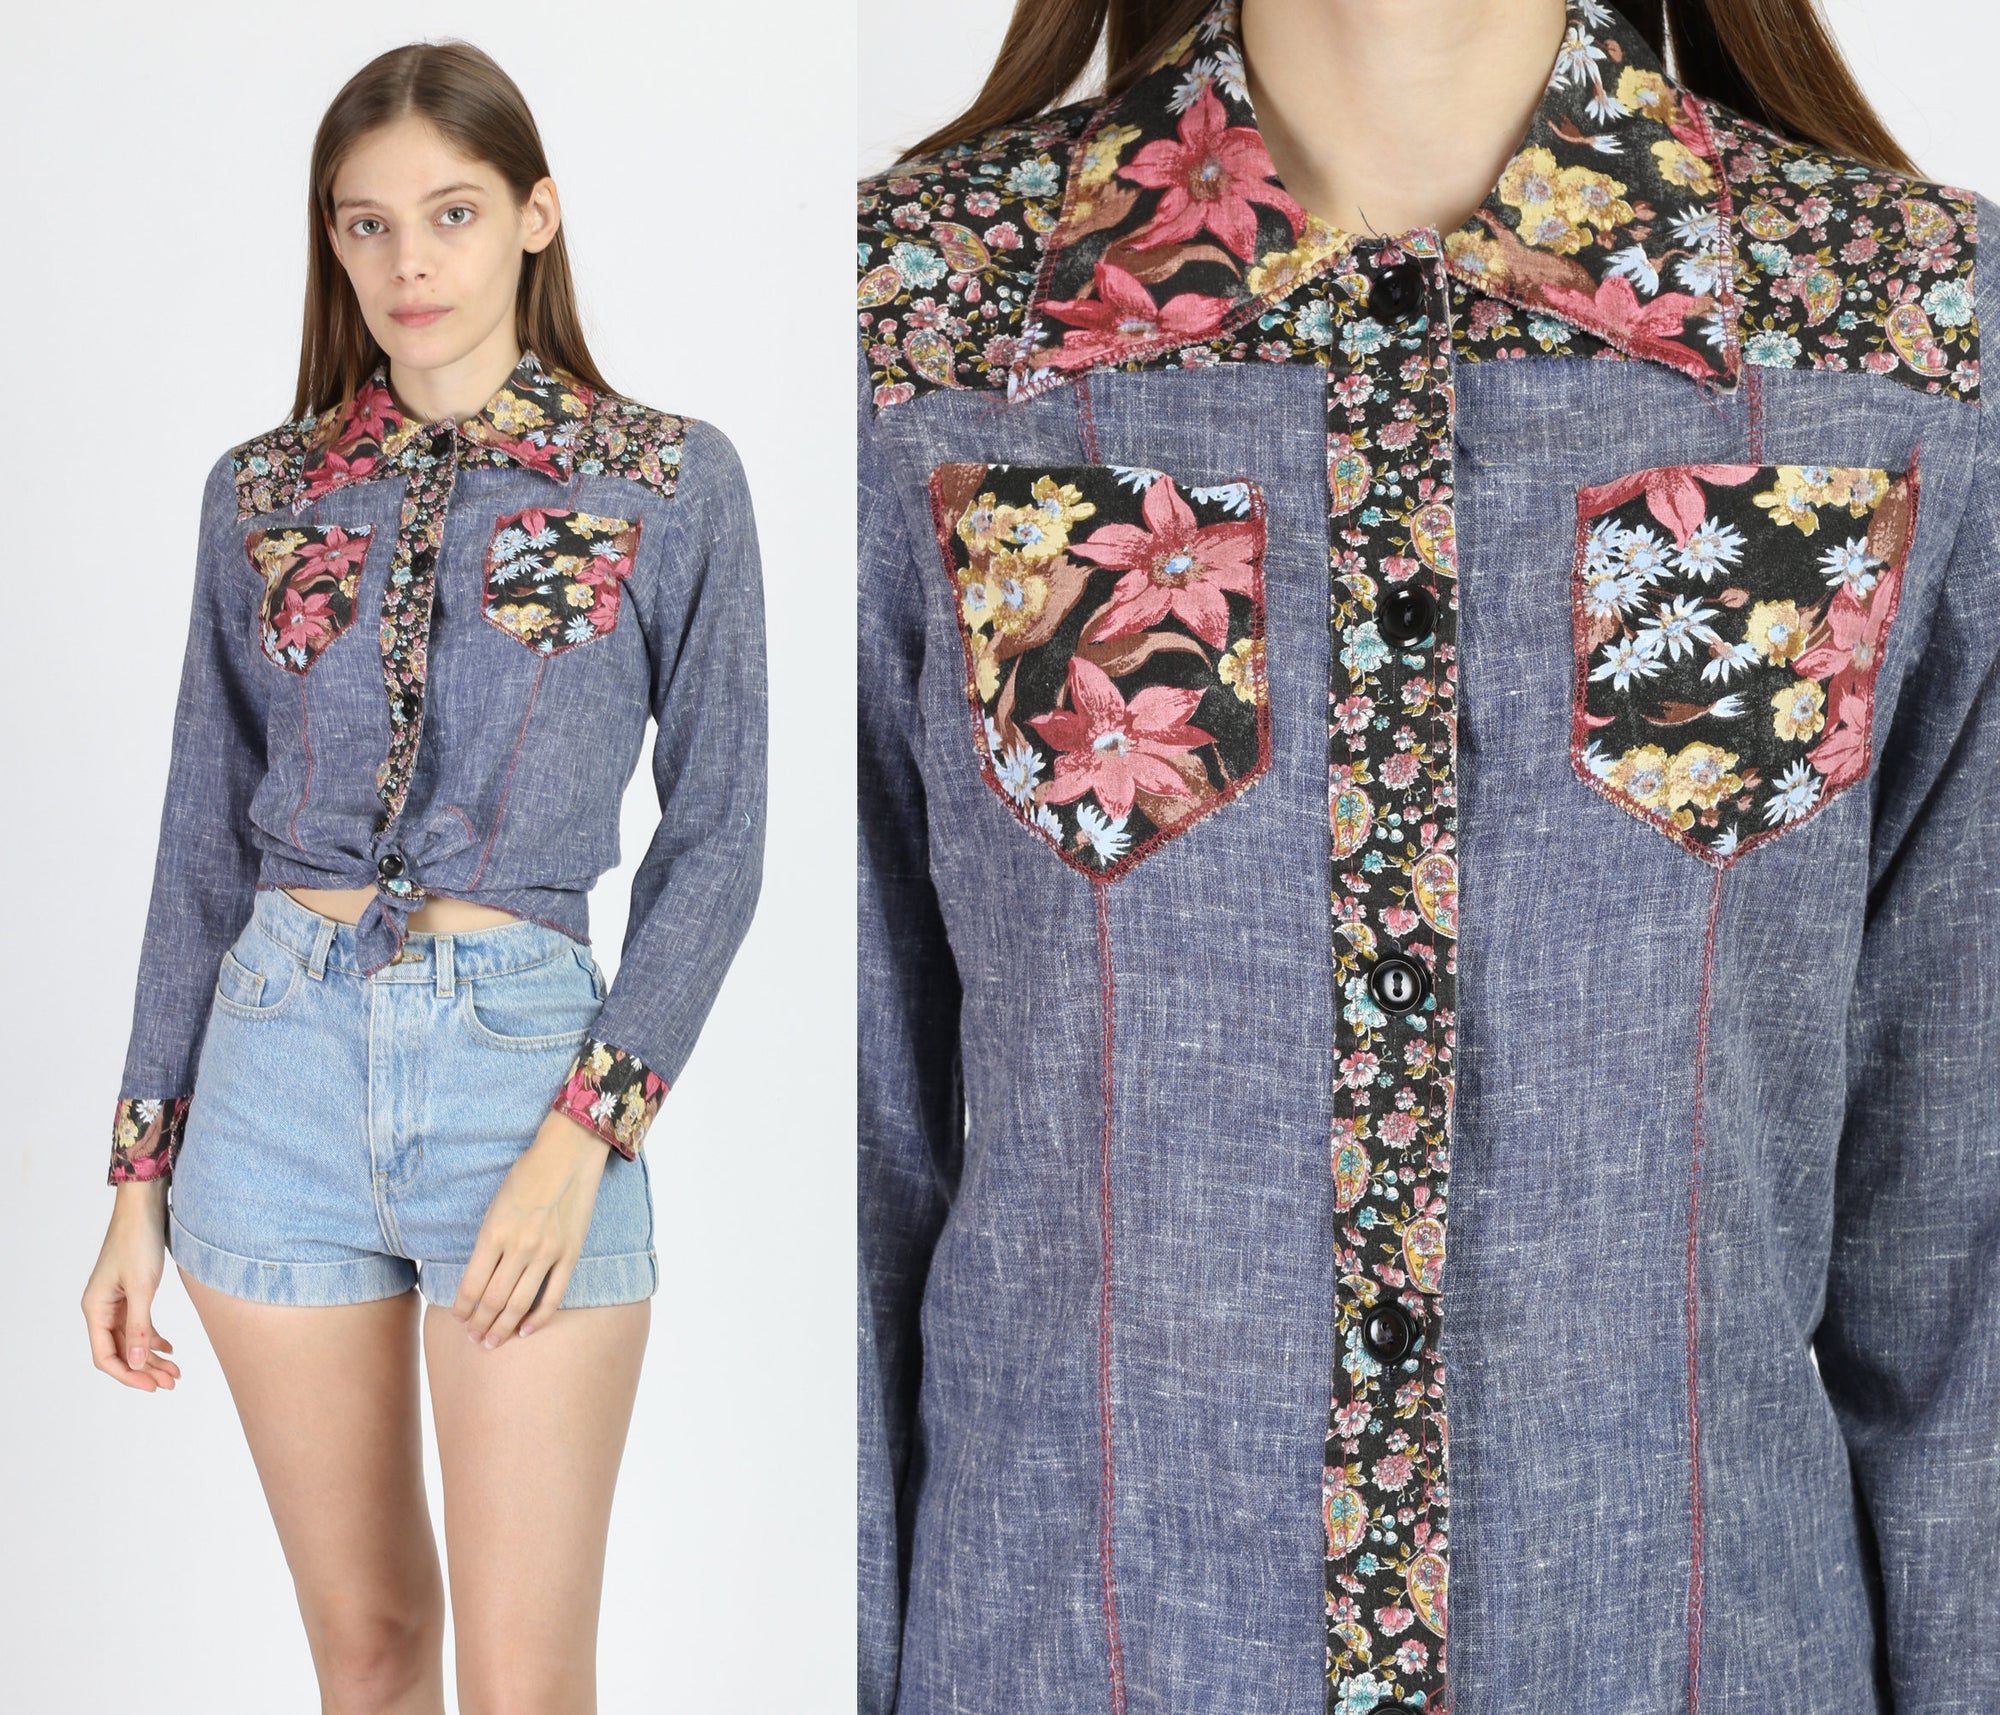 70s Floral Chambray Blouse - Small